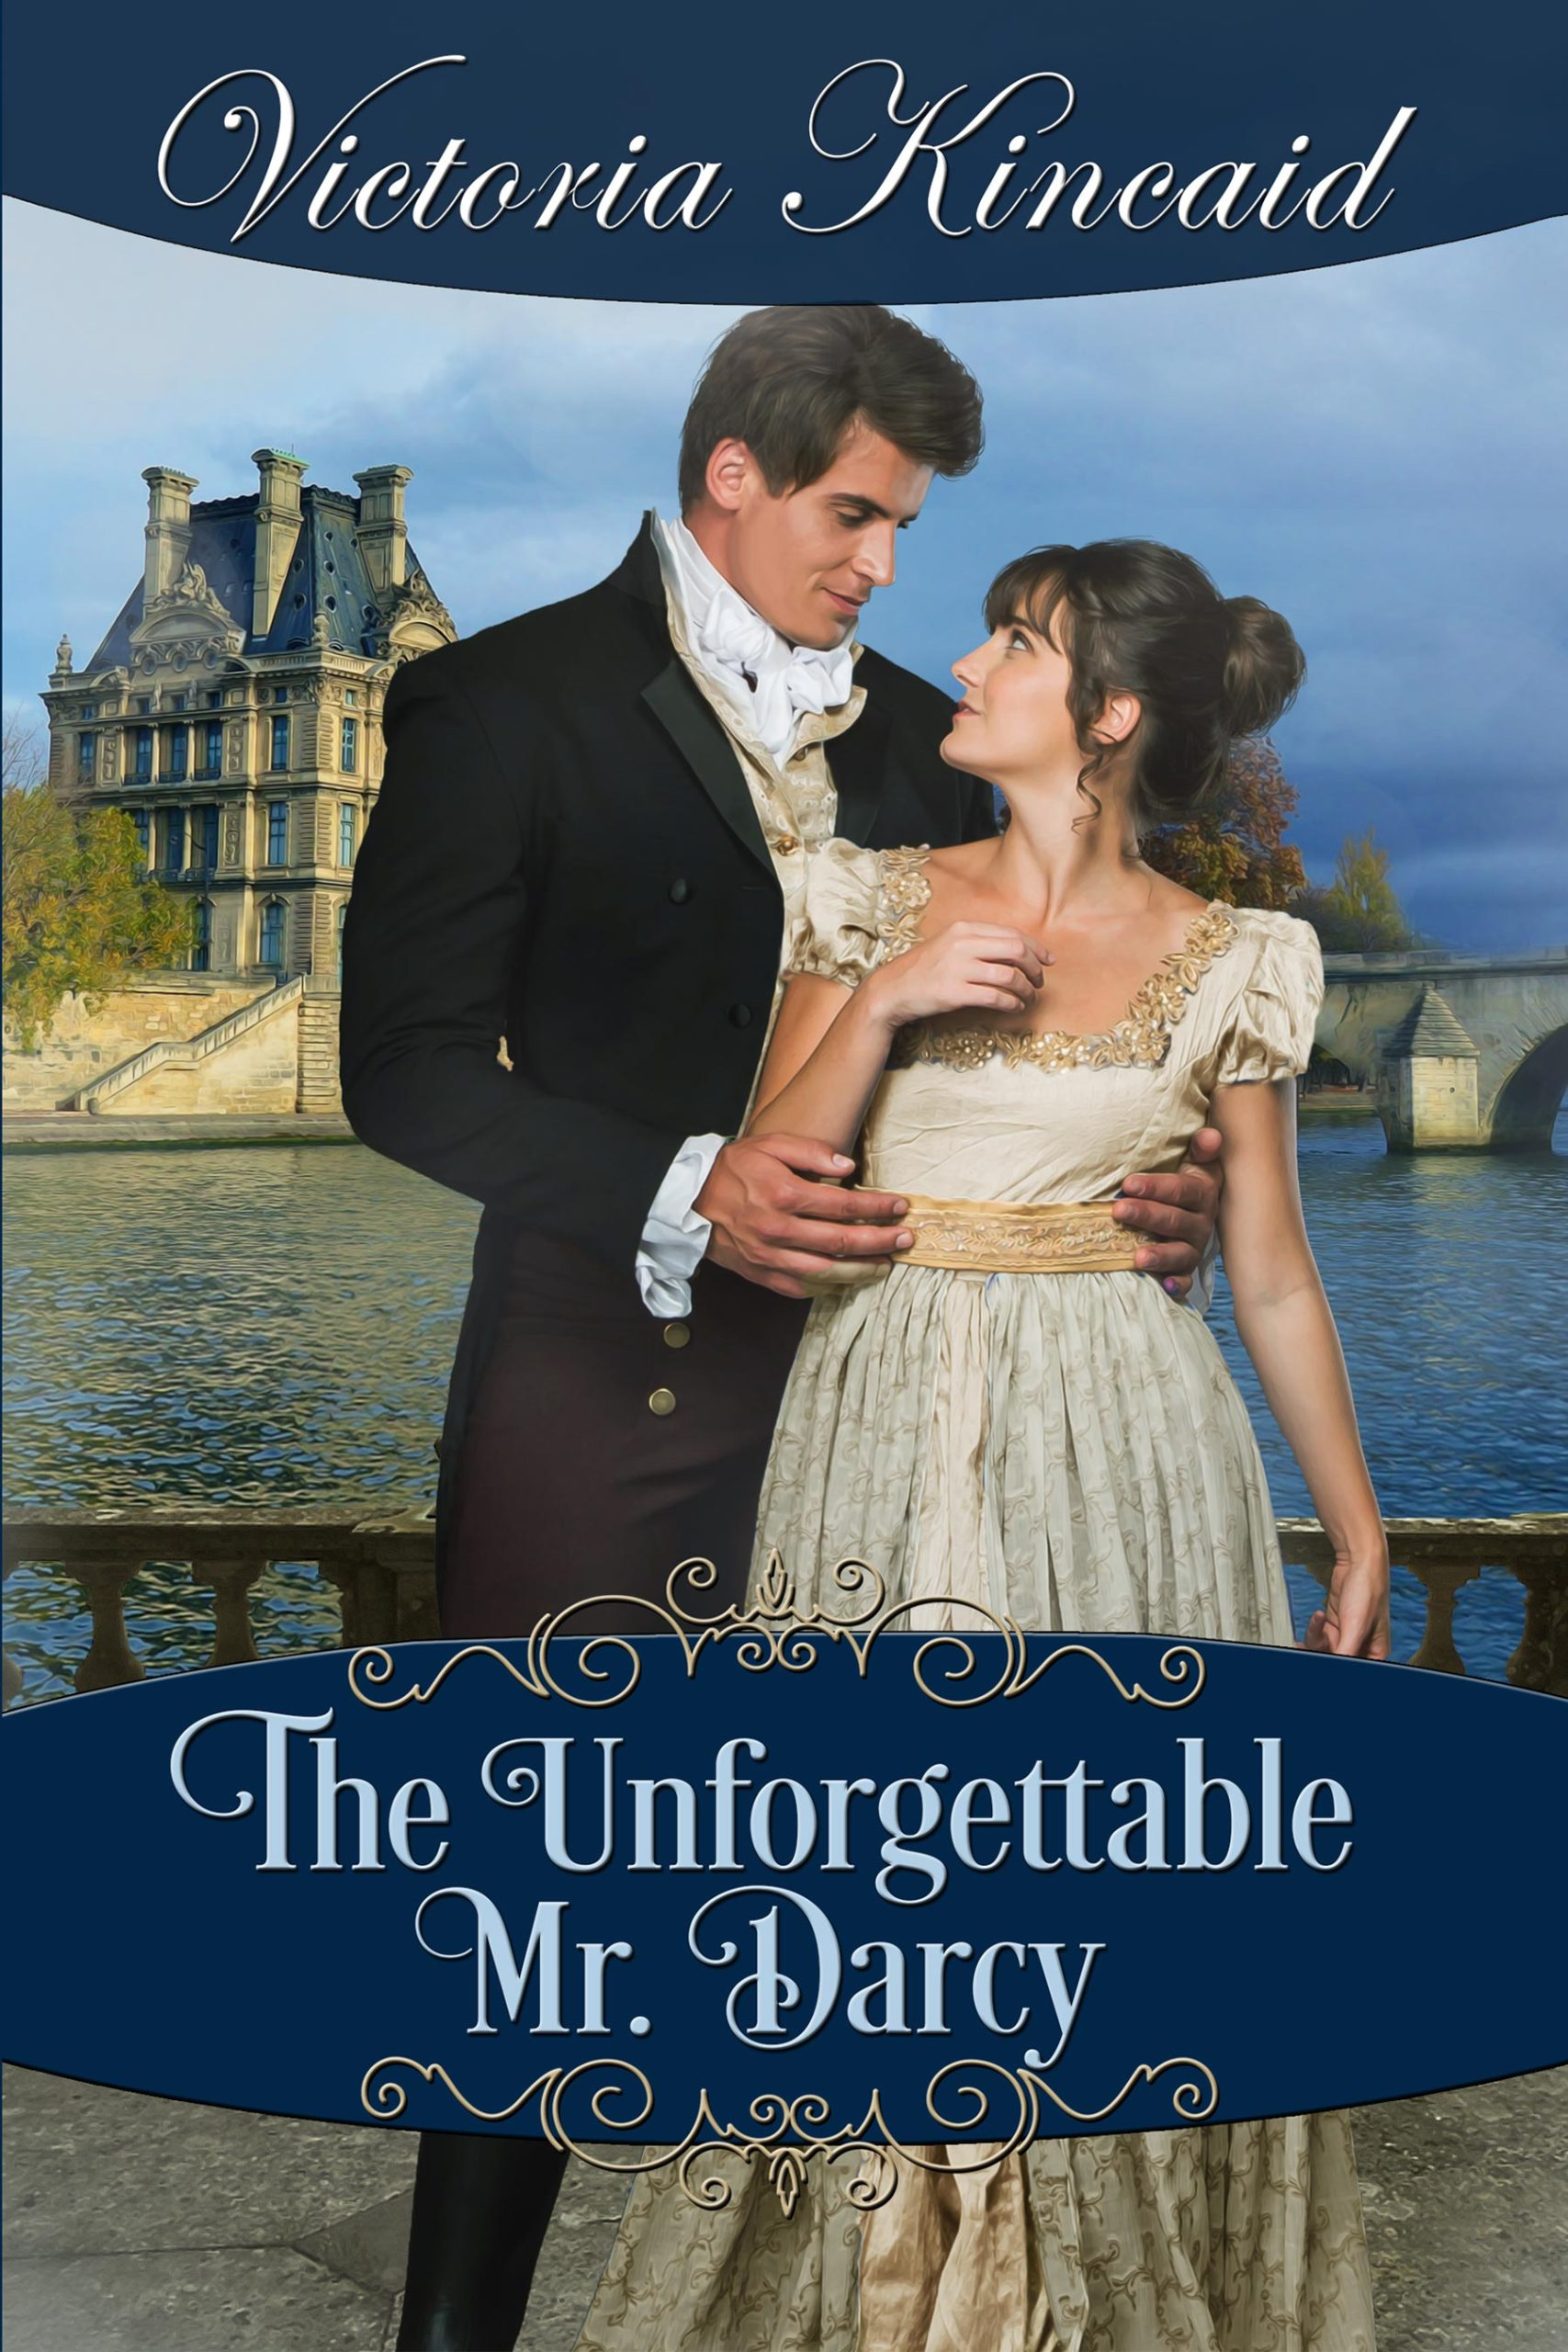 The Unforgettable Mr. Darcy by Victoria Kincaid